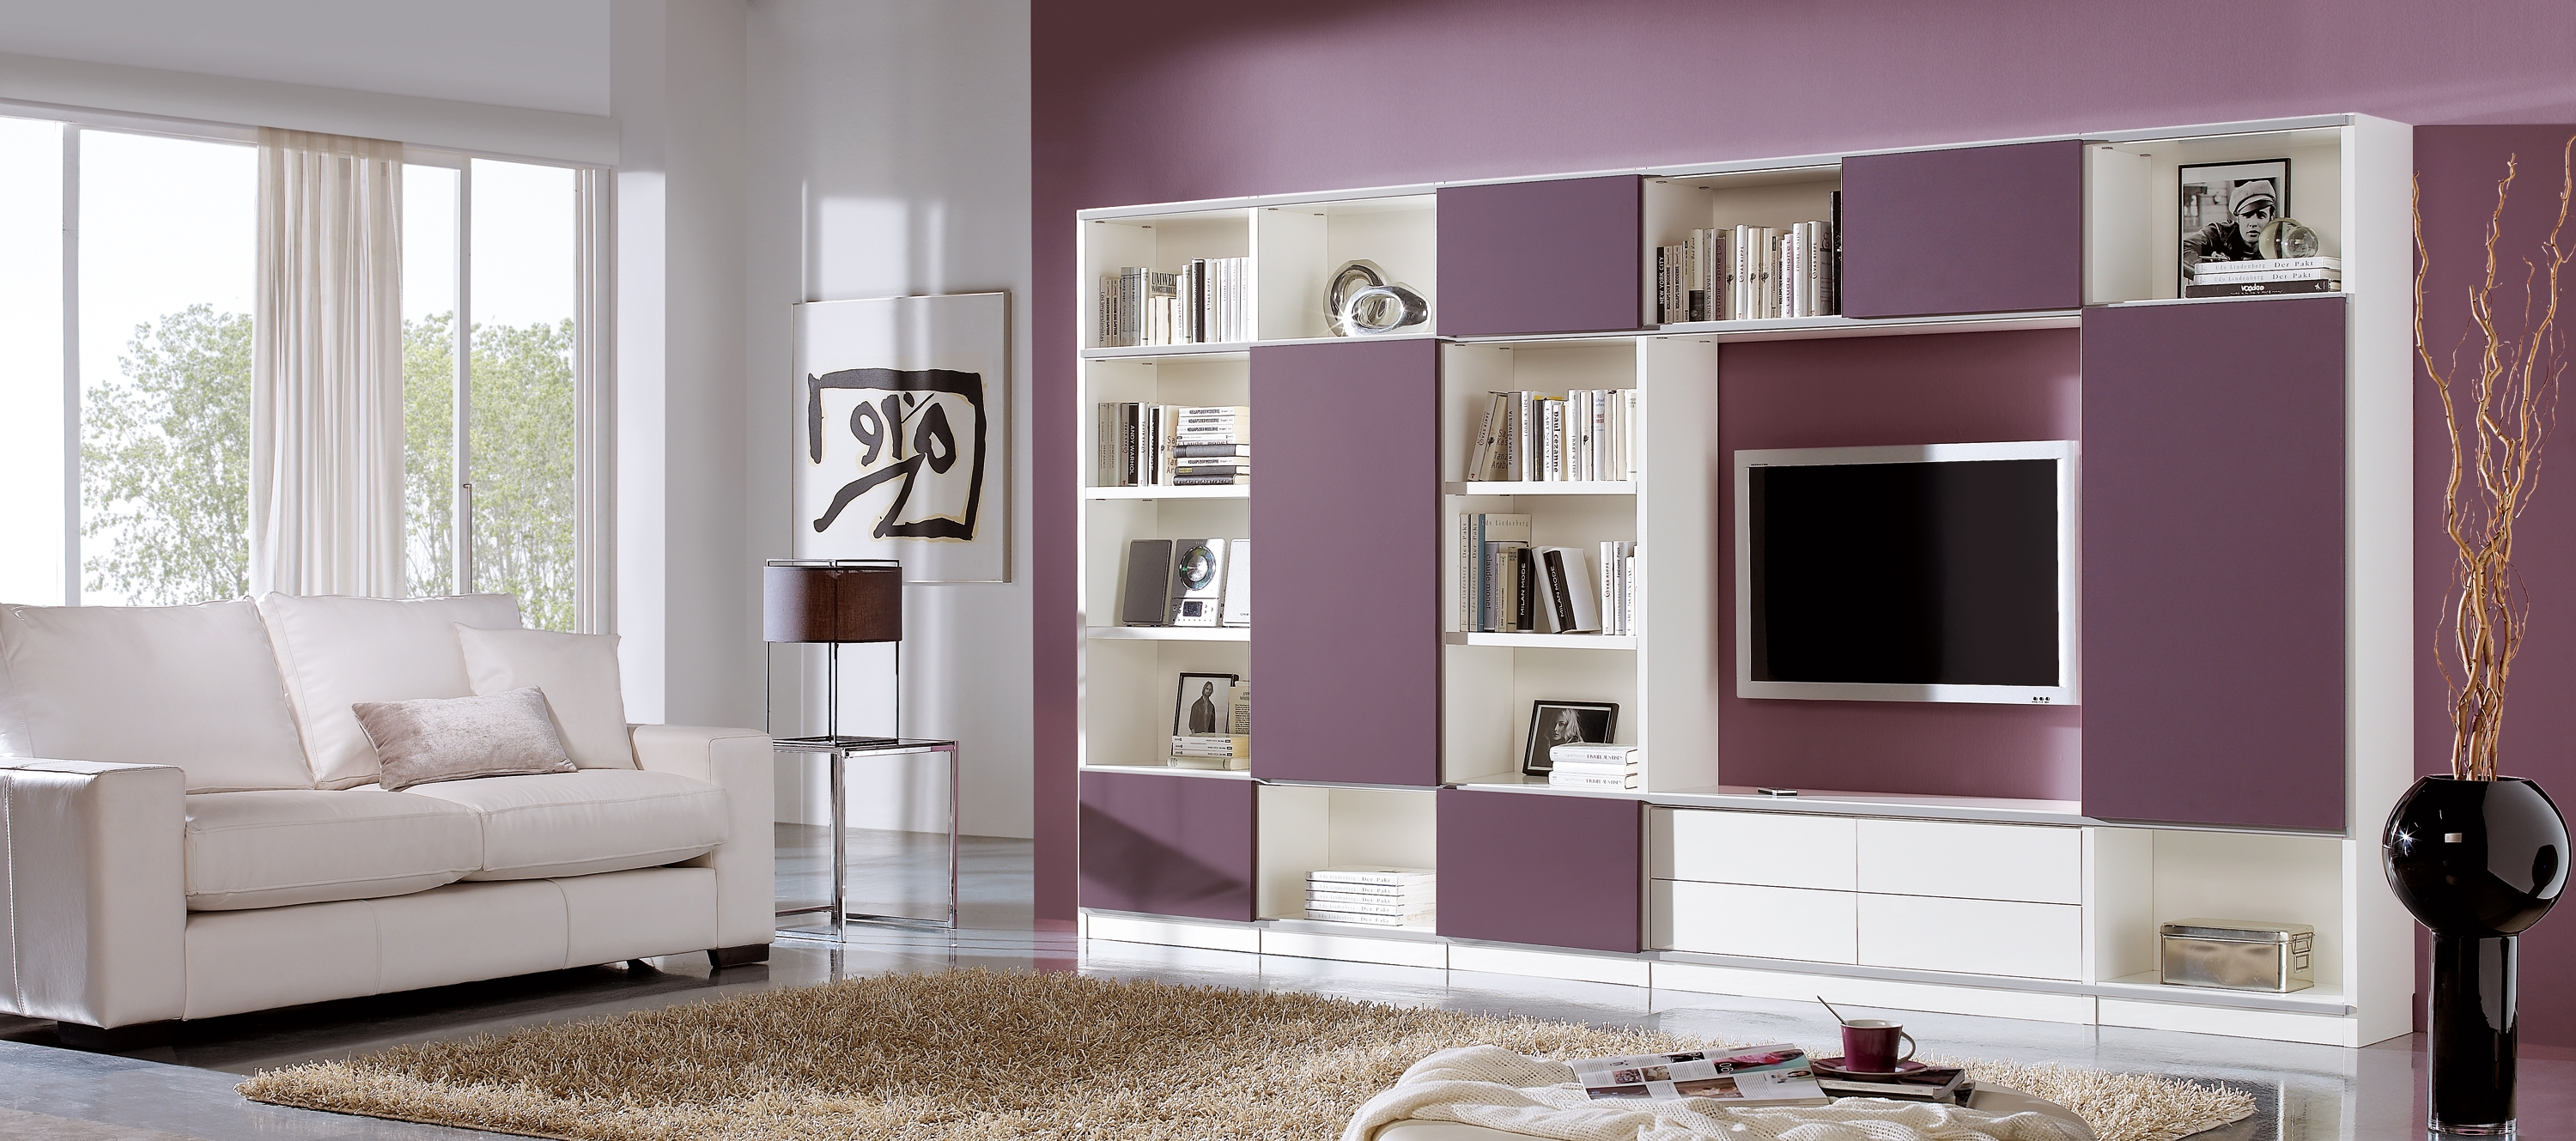 Living Room Storage Units 15 Collection Of Sitting Room Storage Units